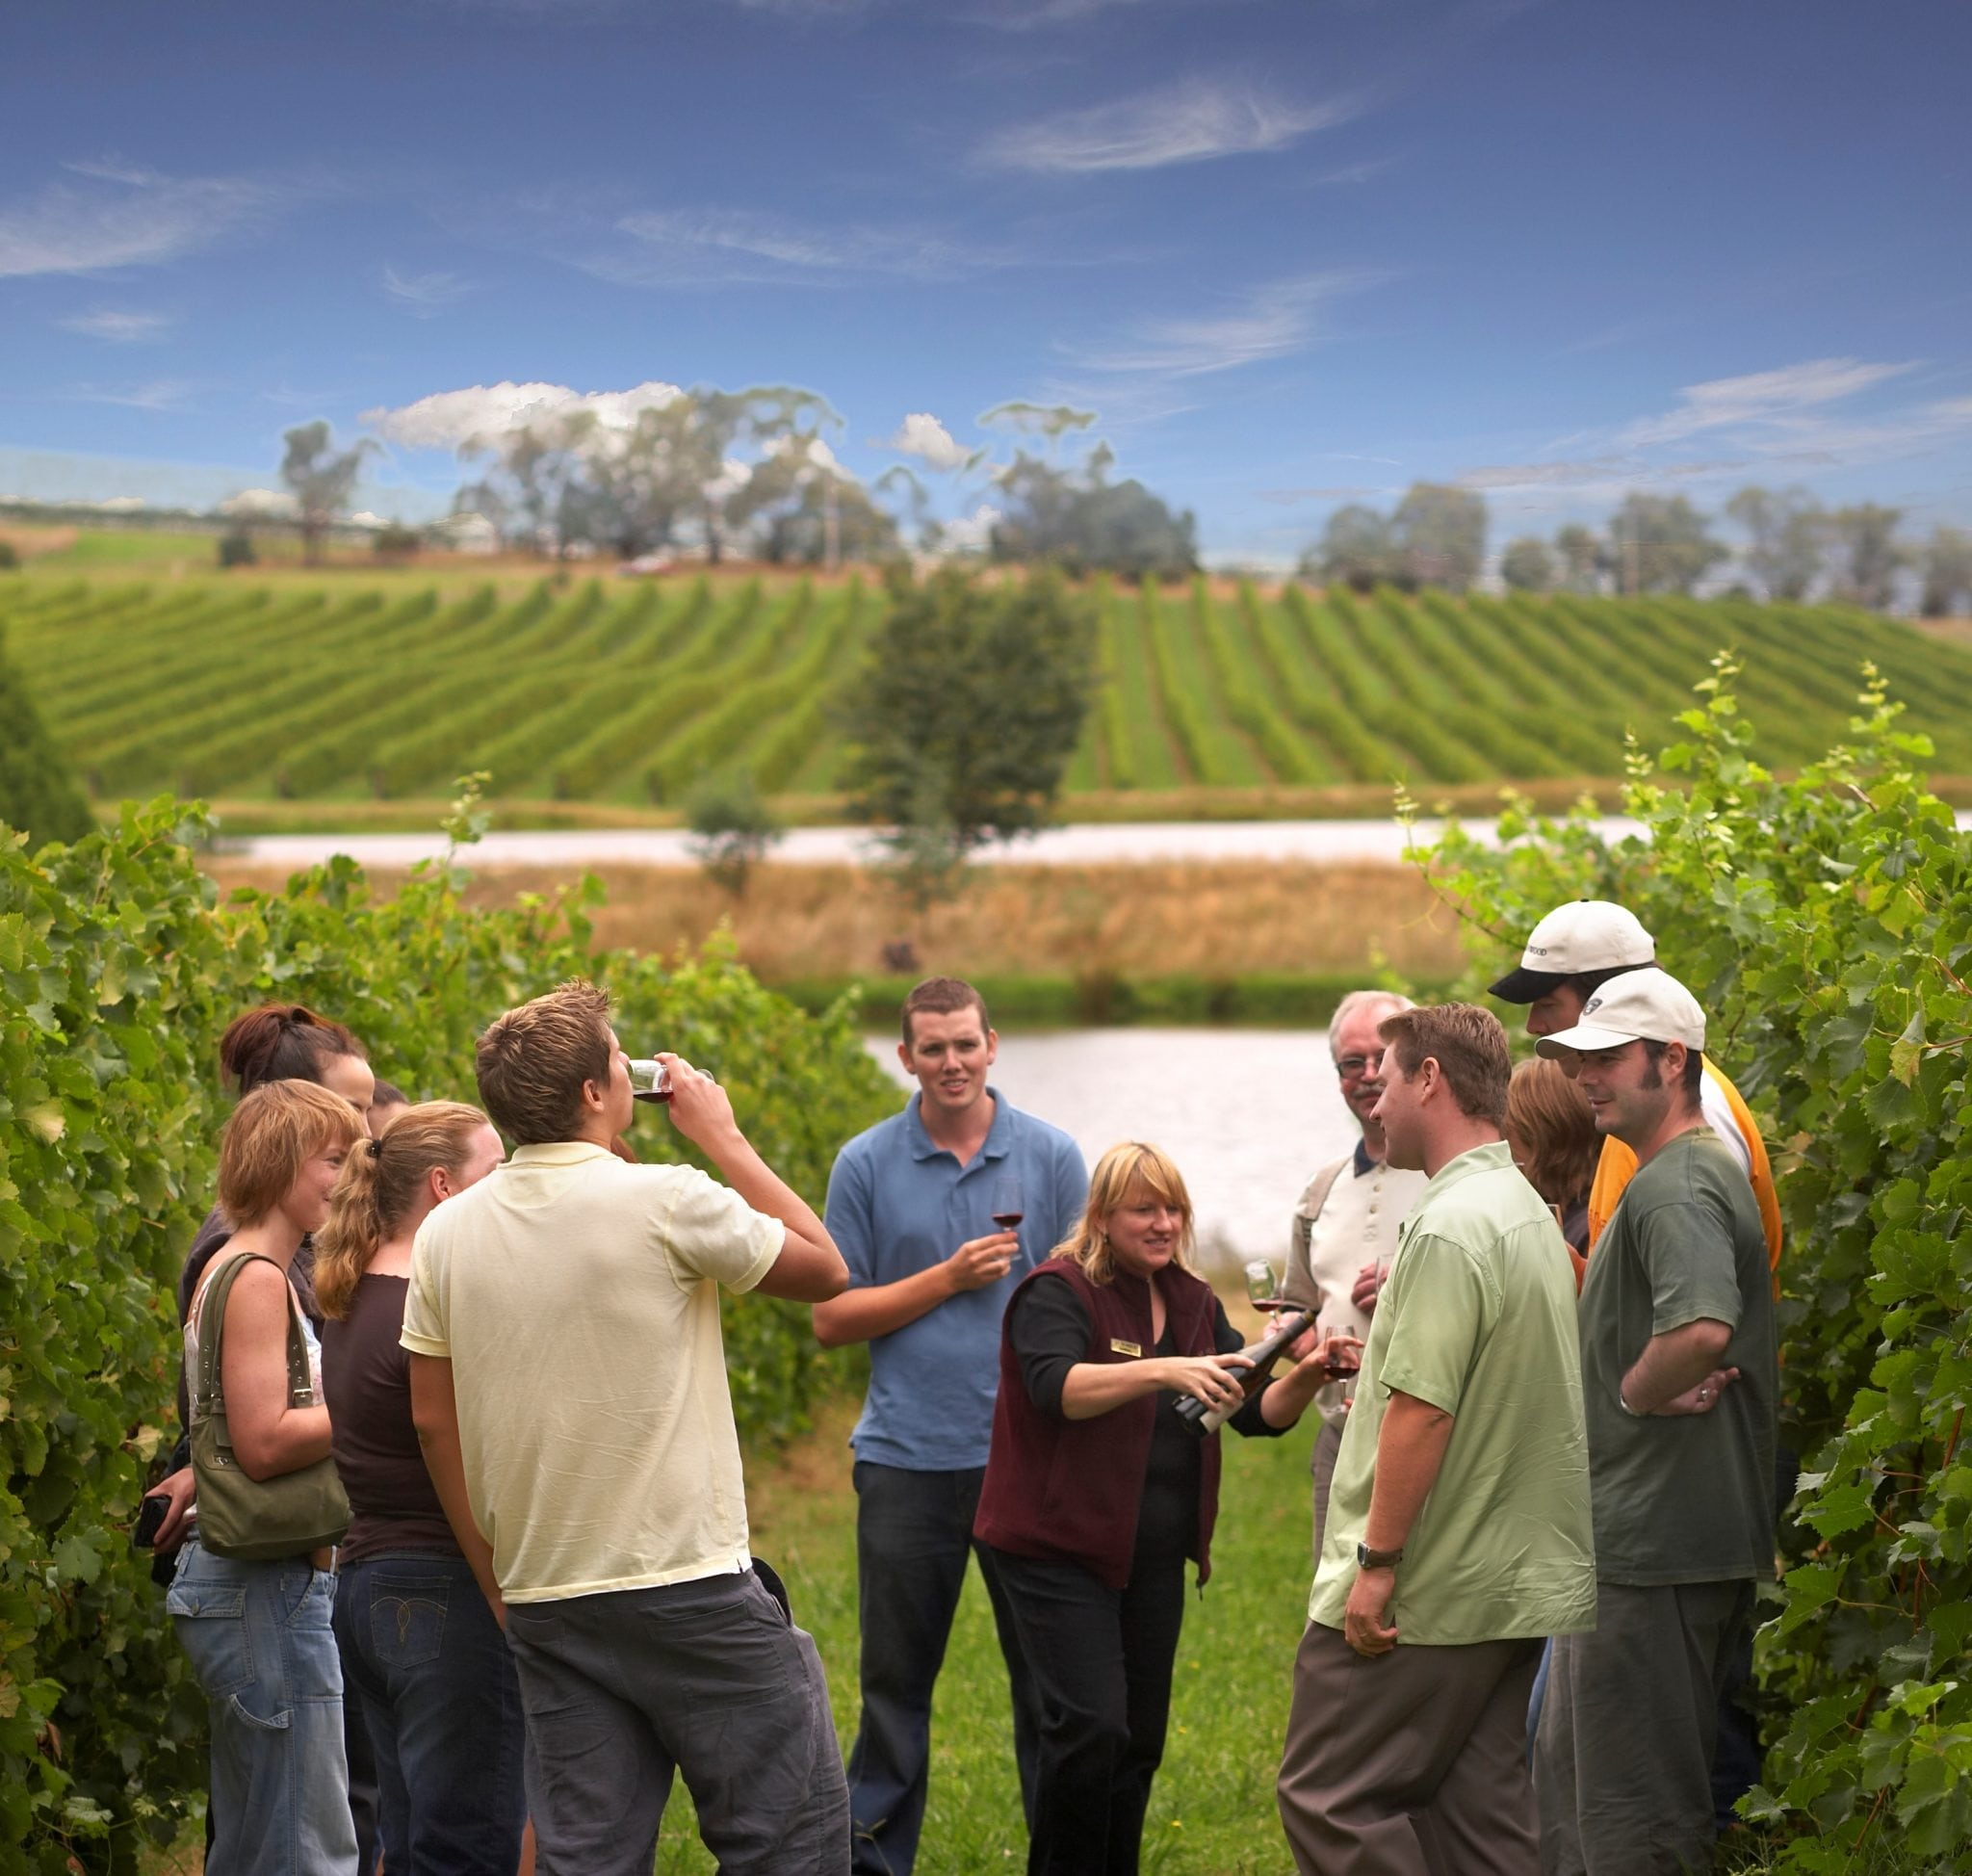 Australian group Wine Tours in Victoria's Yarra Valley